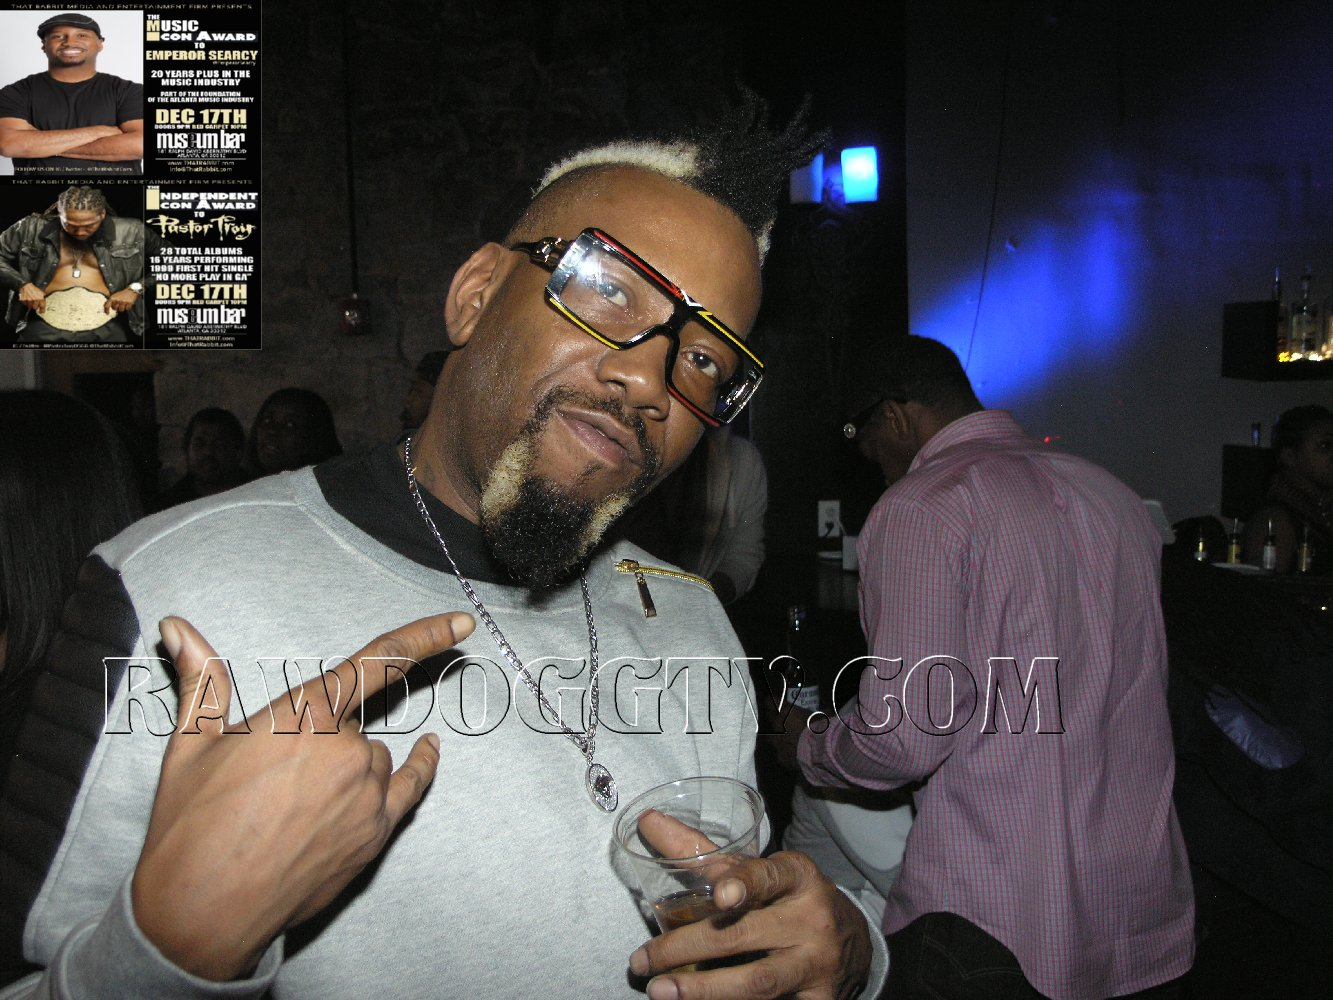 ThatRabbit Magazine Photos-ATL Legends Reunion-The Music Icon Award-Museum Bar Atlanta-Ray Hamilton- dec 17 2015 RAWDOGGTV 305-490-2182 (111)